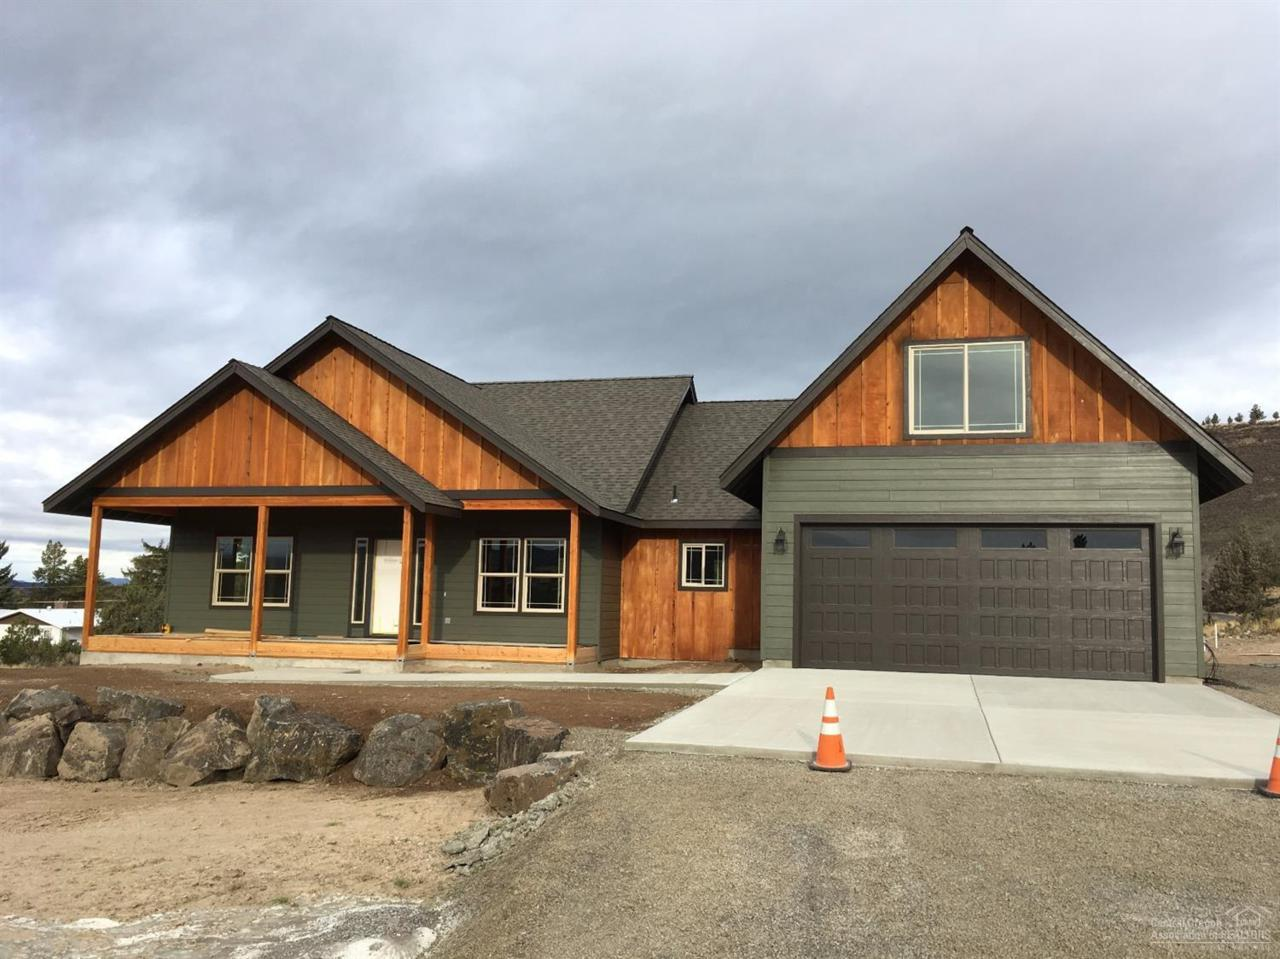 3121 SE Breese Way, Prineville, OR 97754 (MLS #201609840) :: Birtola Garmyn High Desert Realty